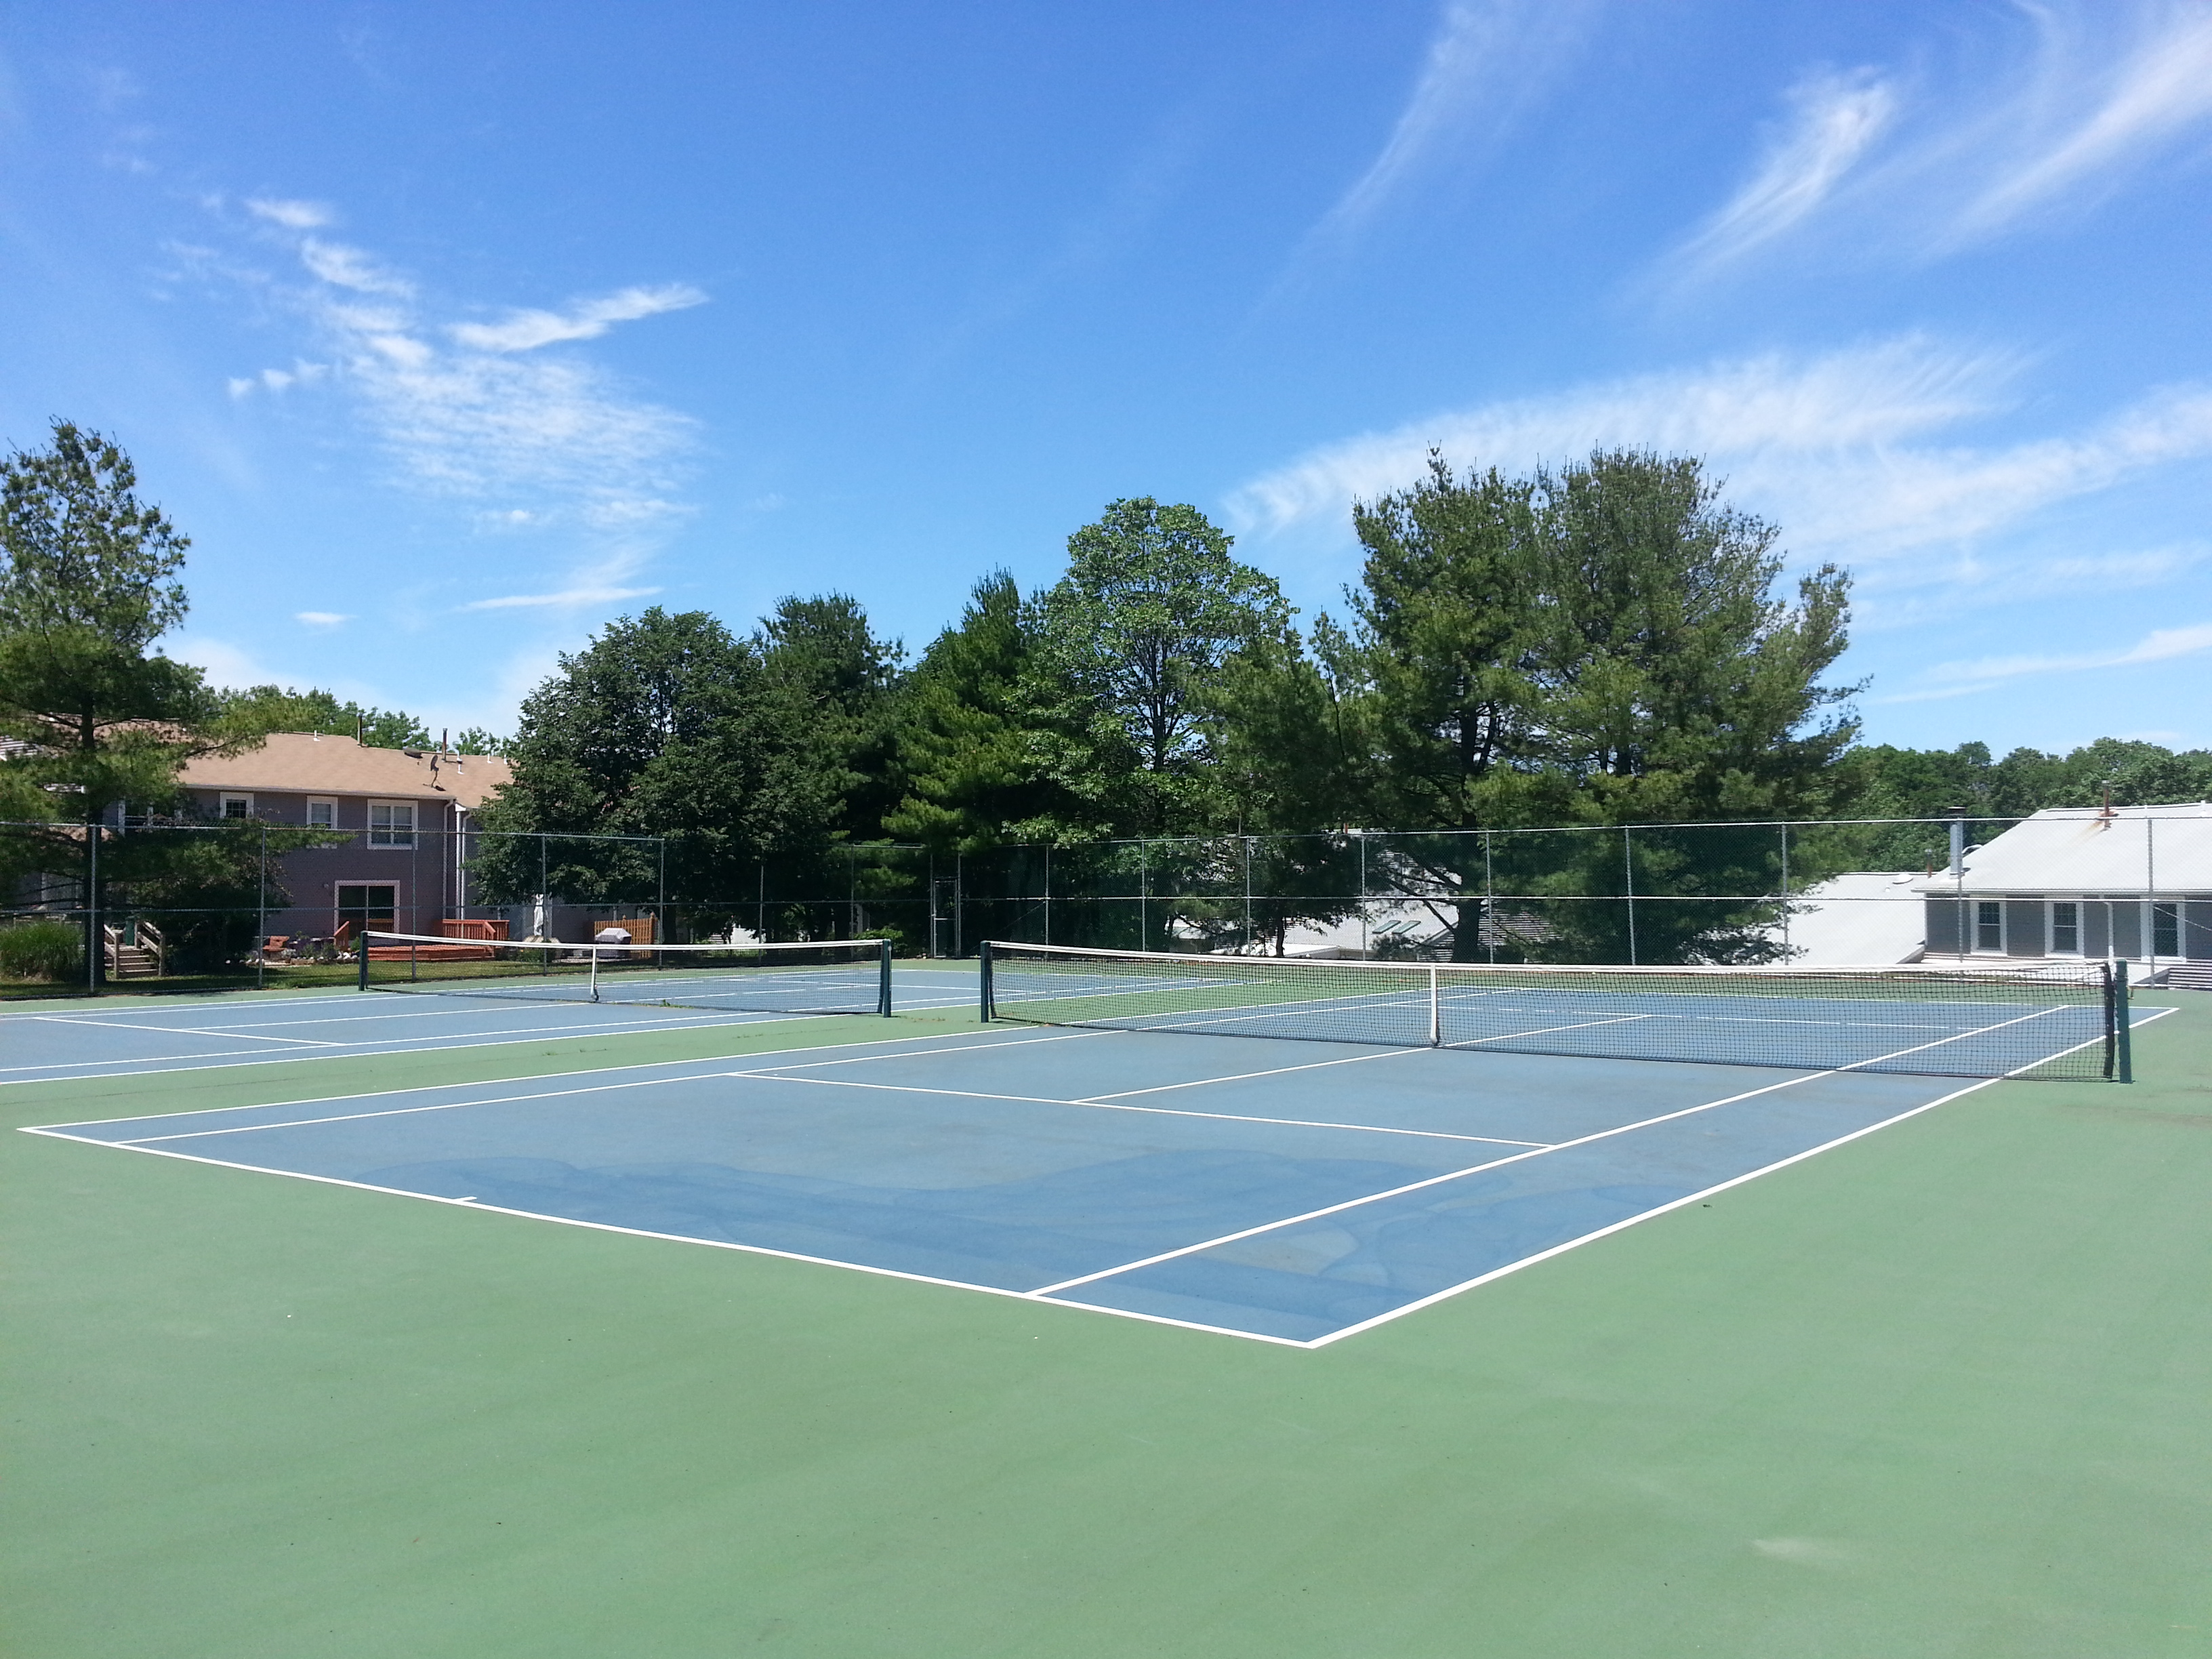 Tinton Woods in Eatontown has two beautifully cared for tennis courts for residents to use.